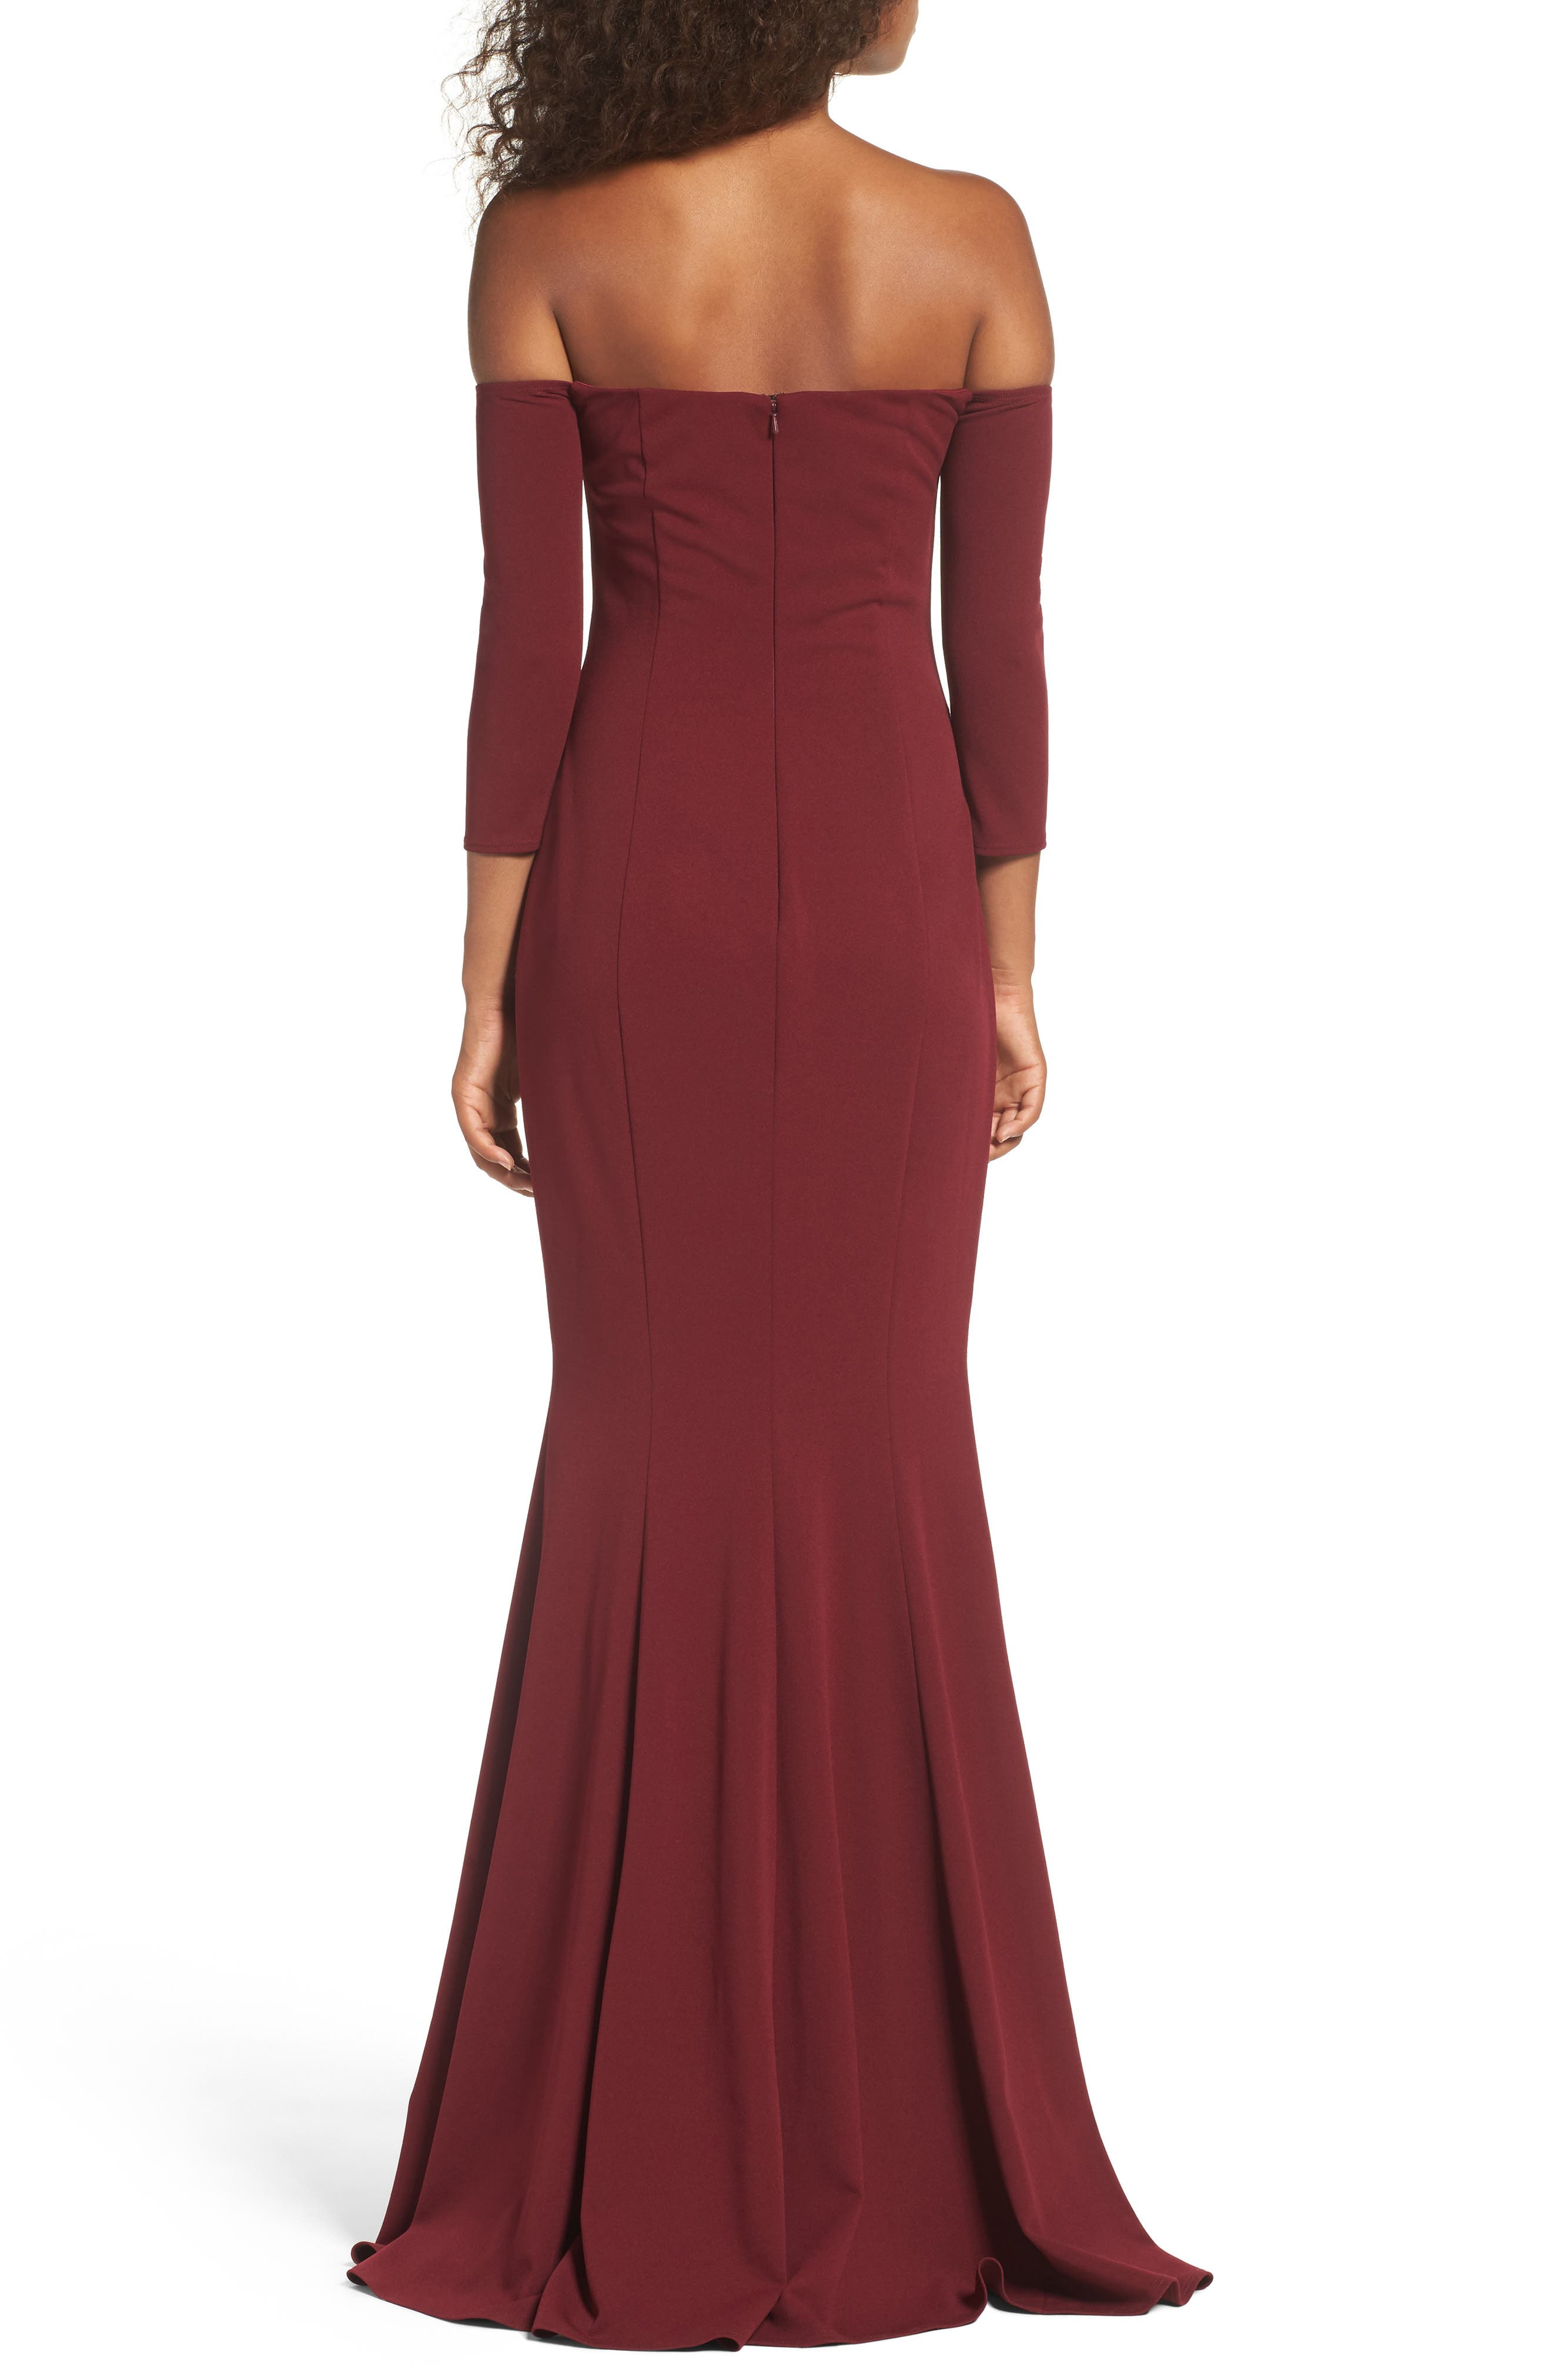 Brentwood Three-Quarter Sleeve Off the Shoulder Gown,                             Alternate thumbnail 3, color,                             Bordeaux